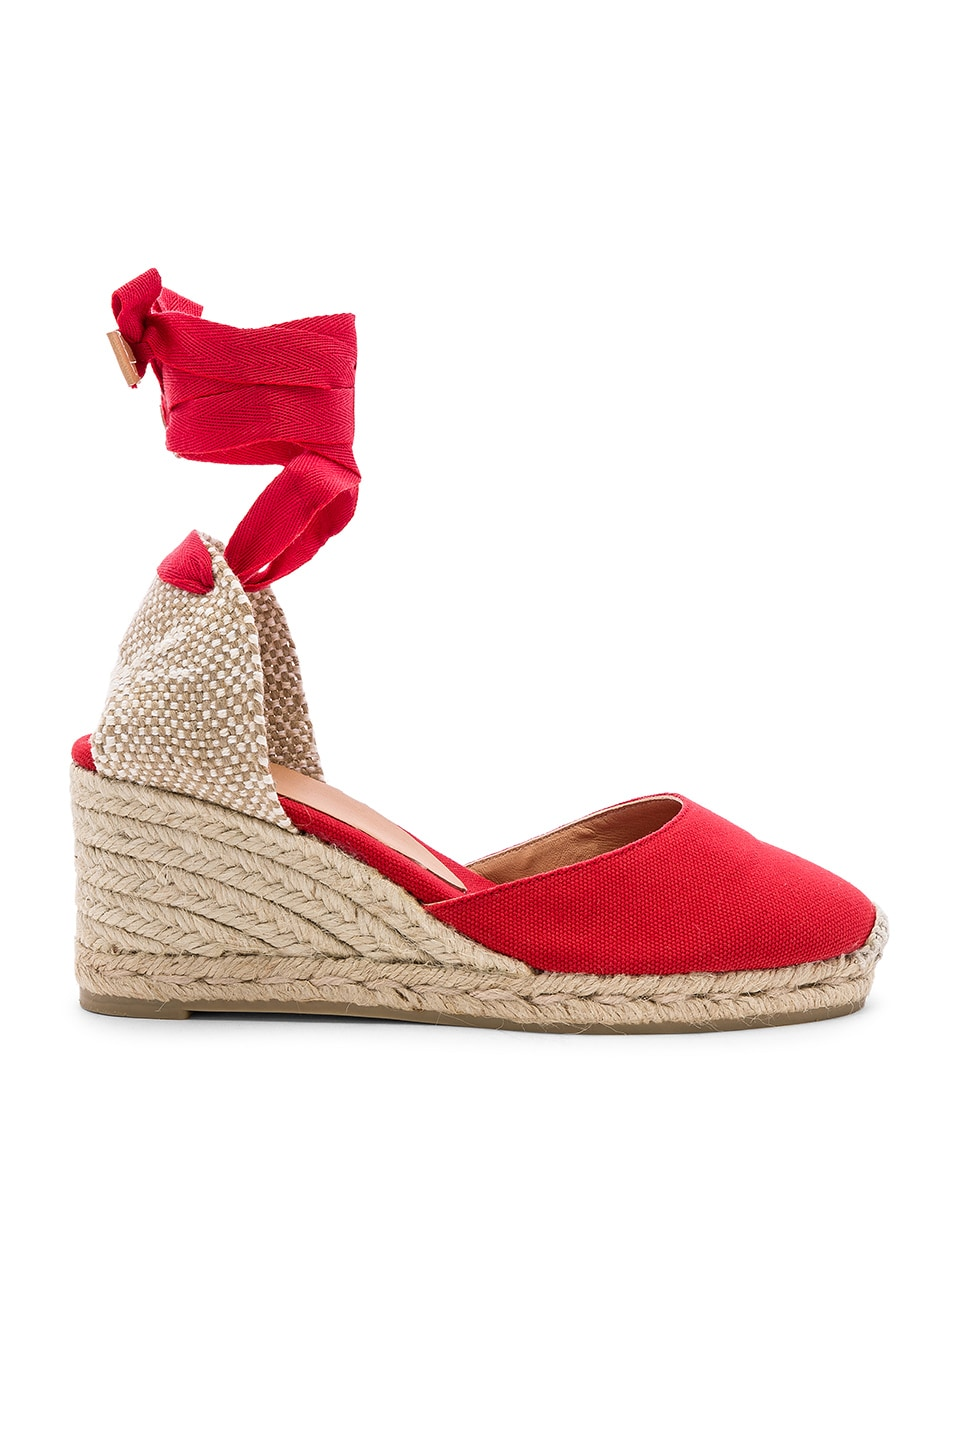 Castaner Carina Wedge in Rojo Rubi